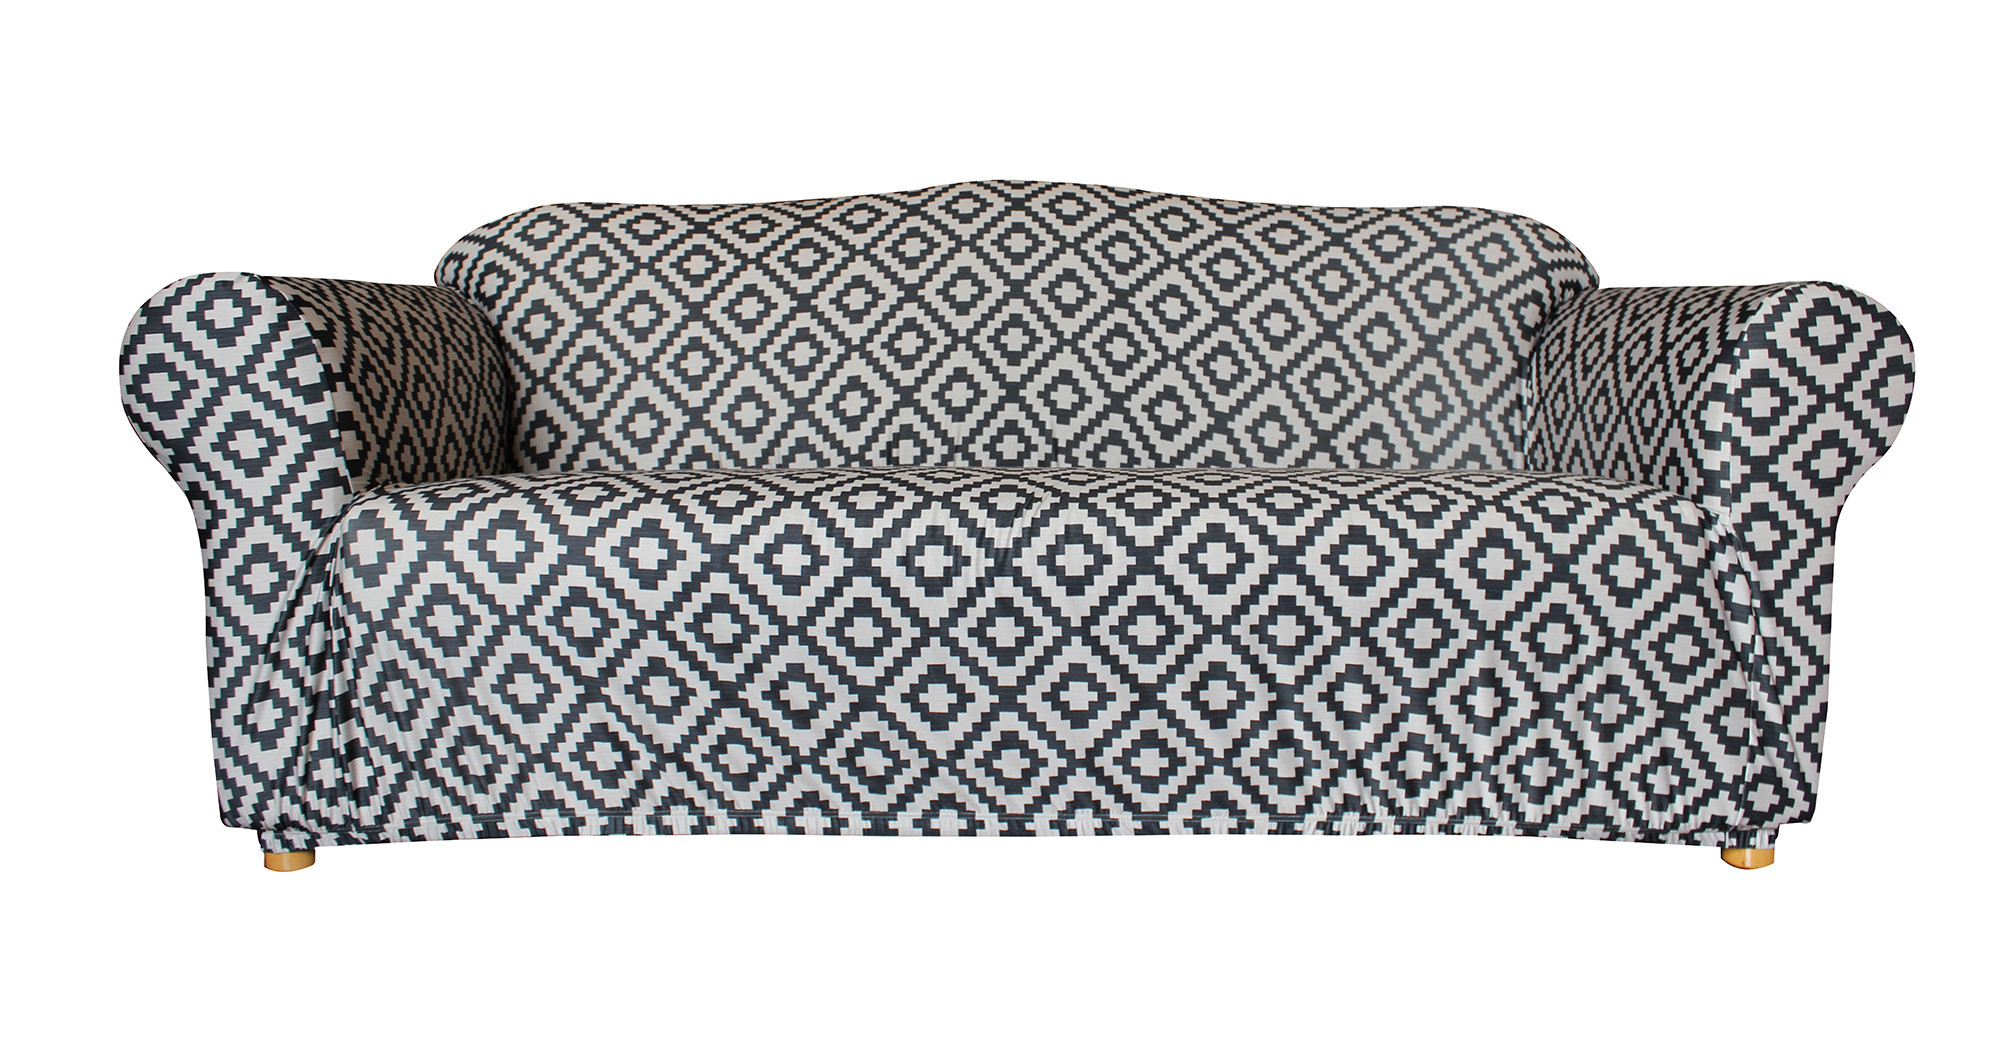 Statement Prints Tribal 3 Seater Sofa Cover